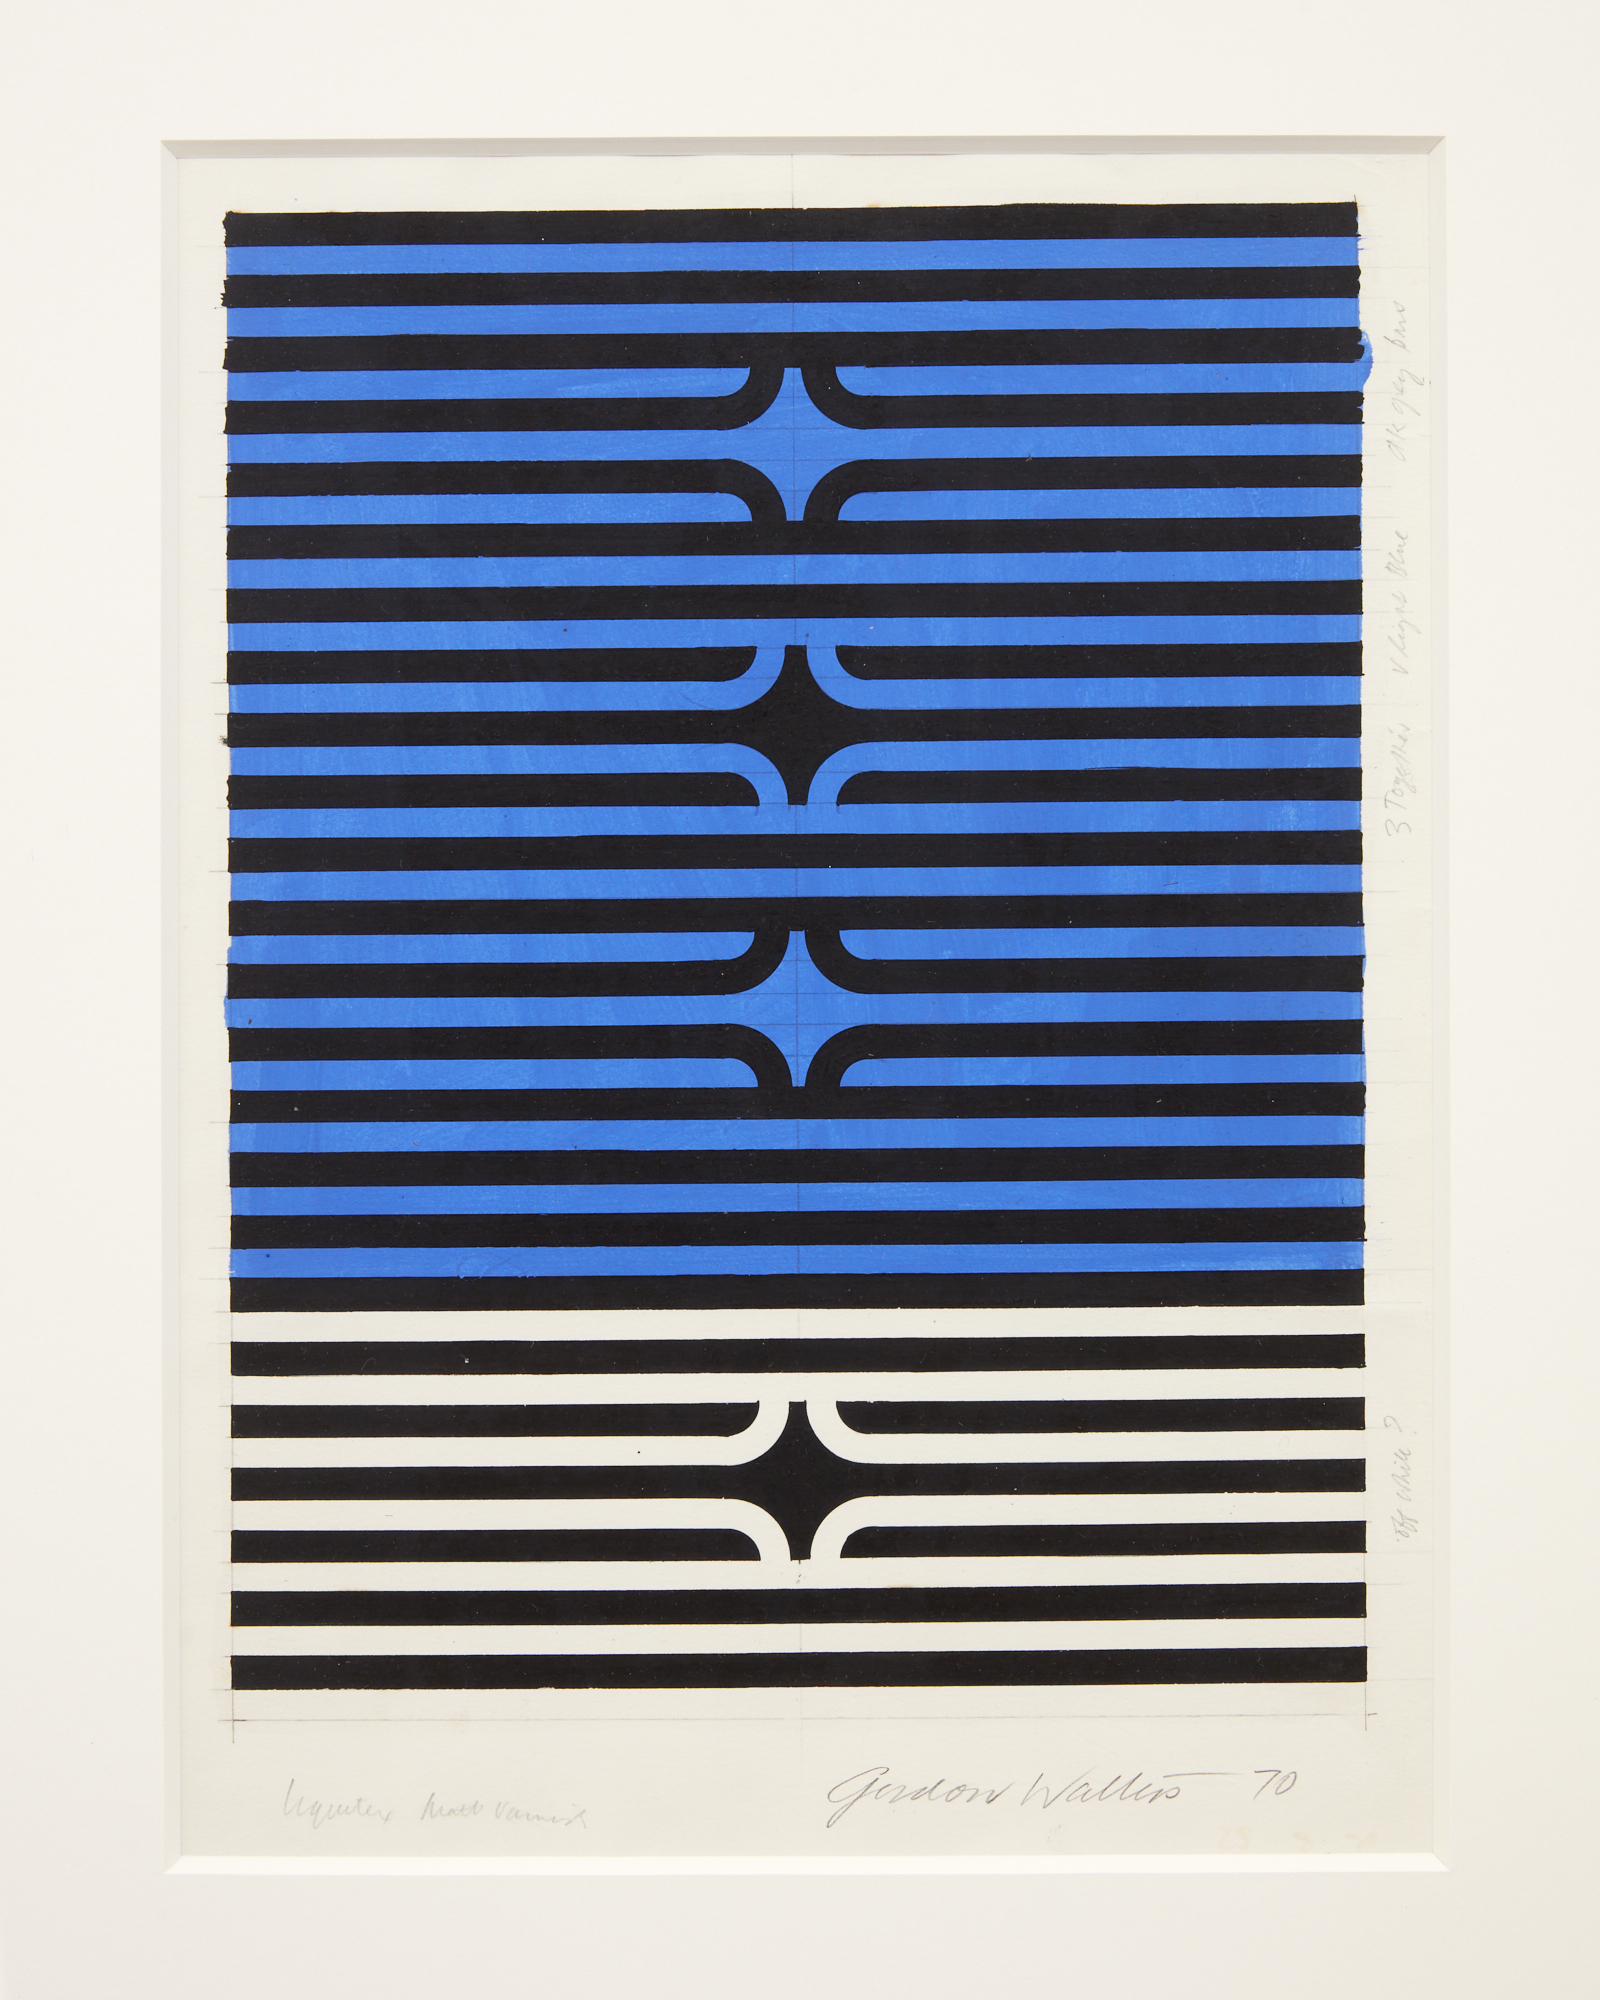 Gordon Walters,  Untitled, 1970 , acrylic on paper, 300 x 225 mm (image size), courtesy of the Walters Estate